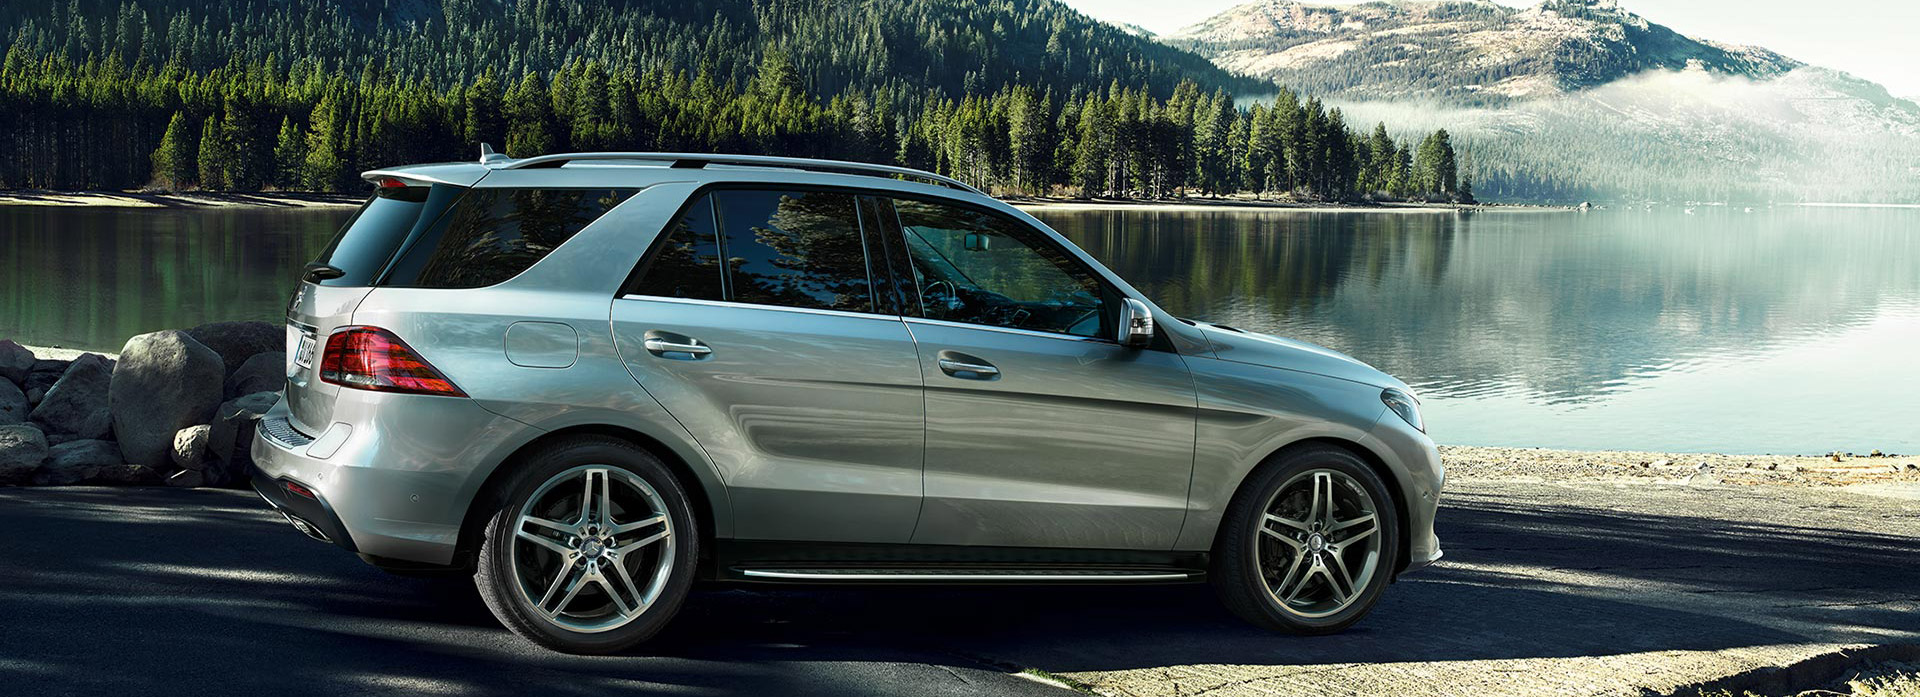 New mercedes gle class for sale jct600 for Mercedes benz brands